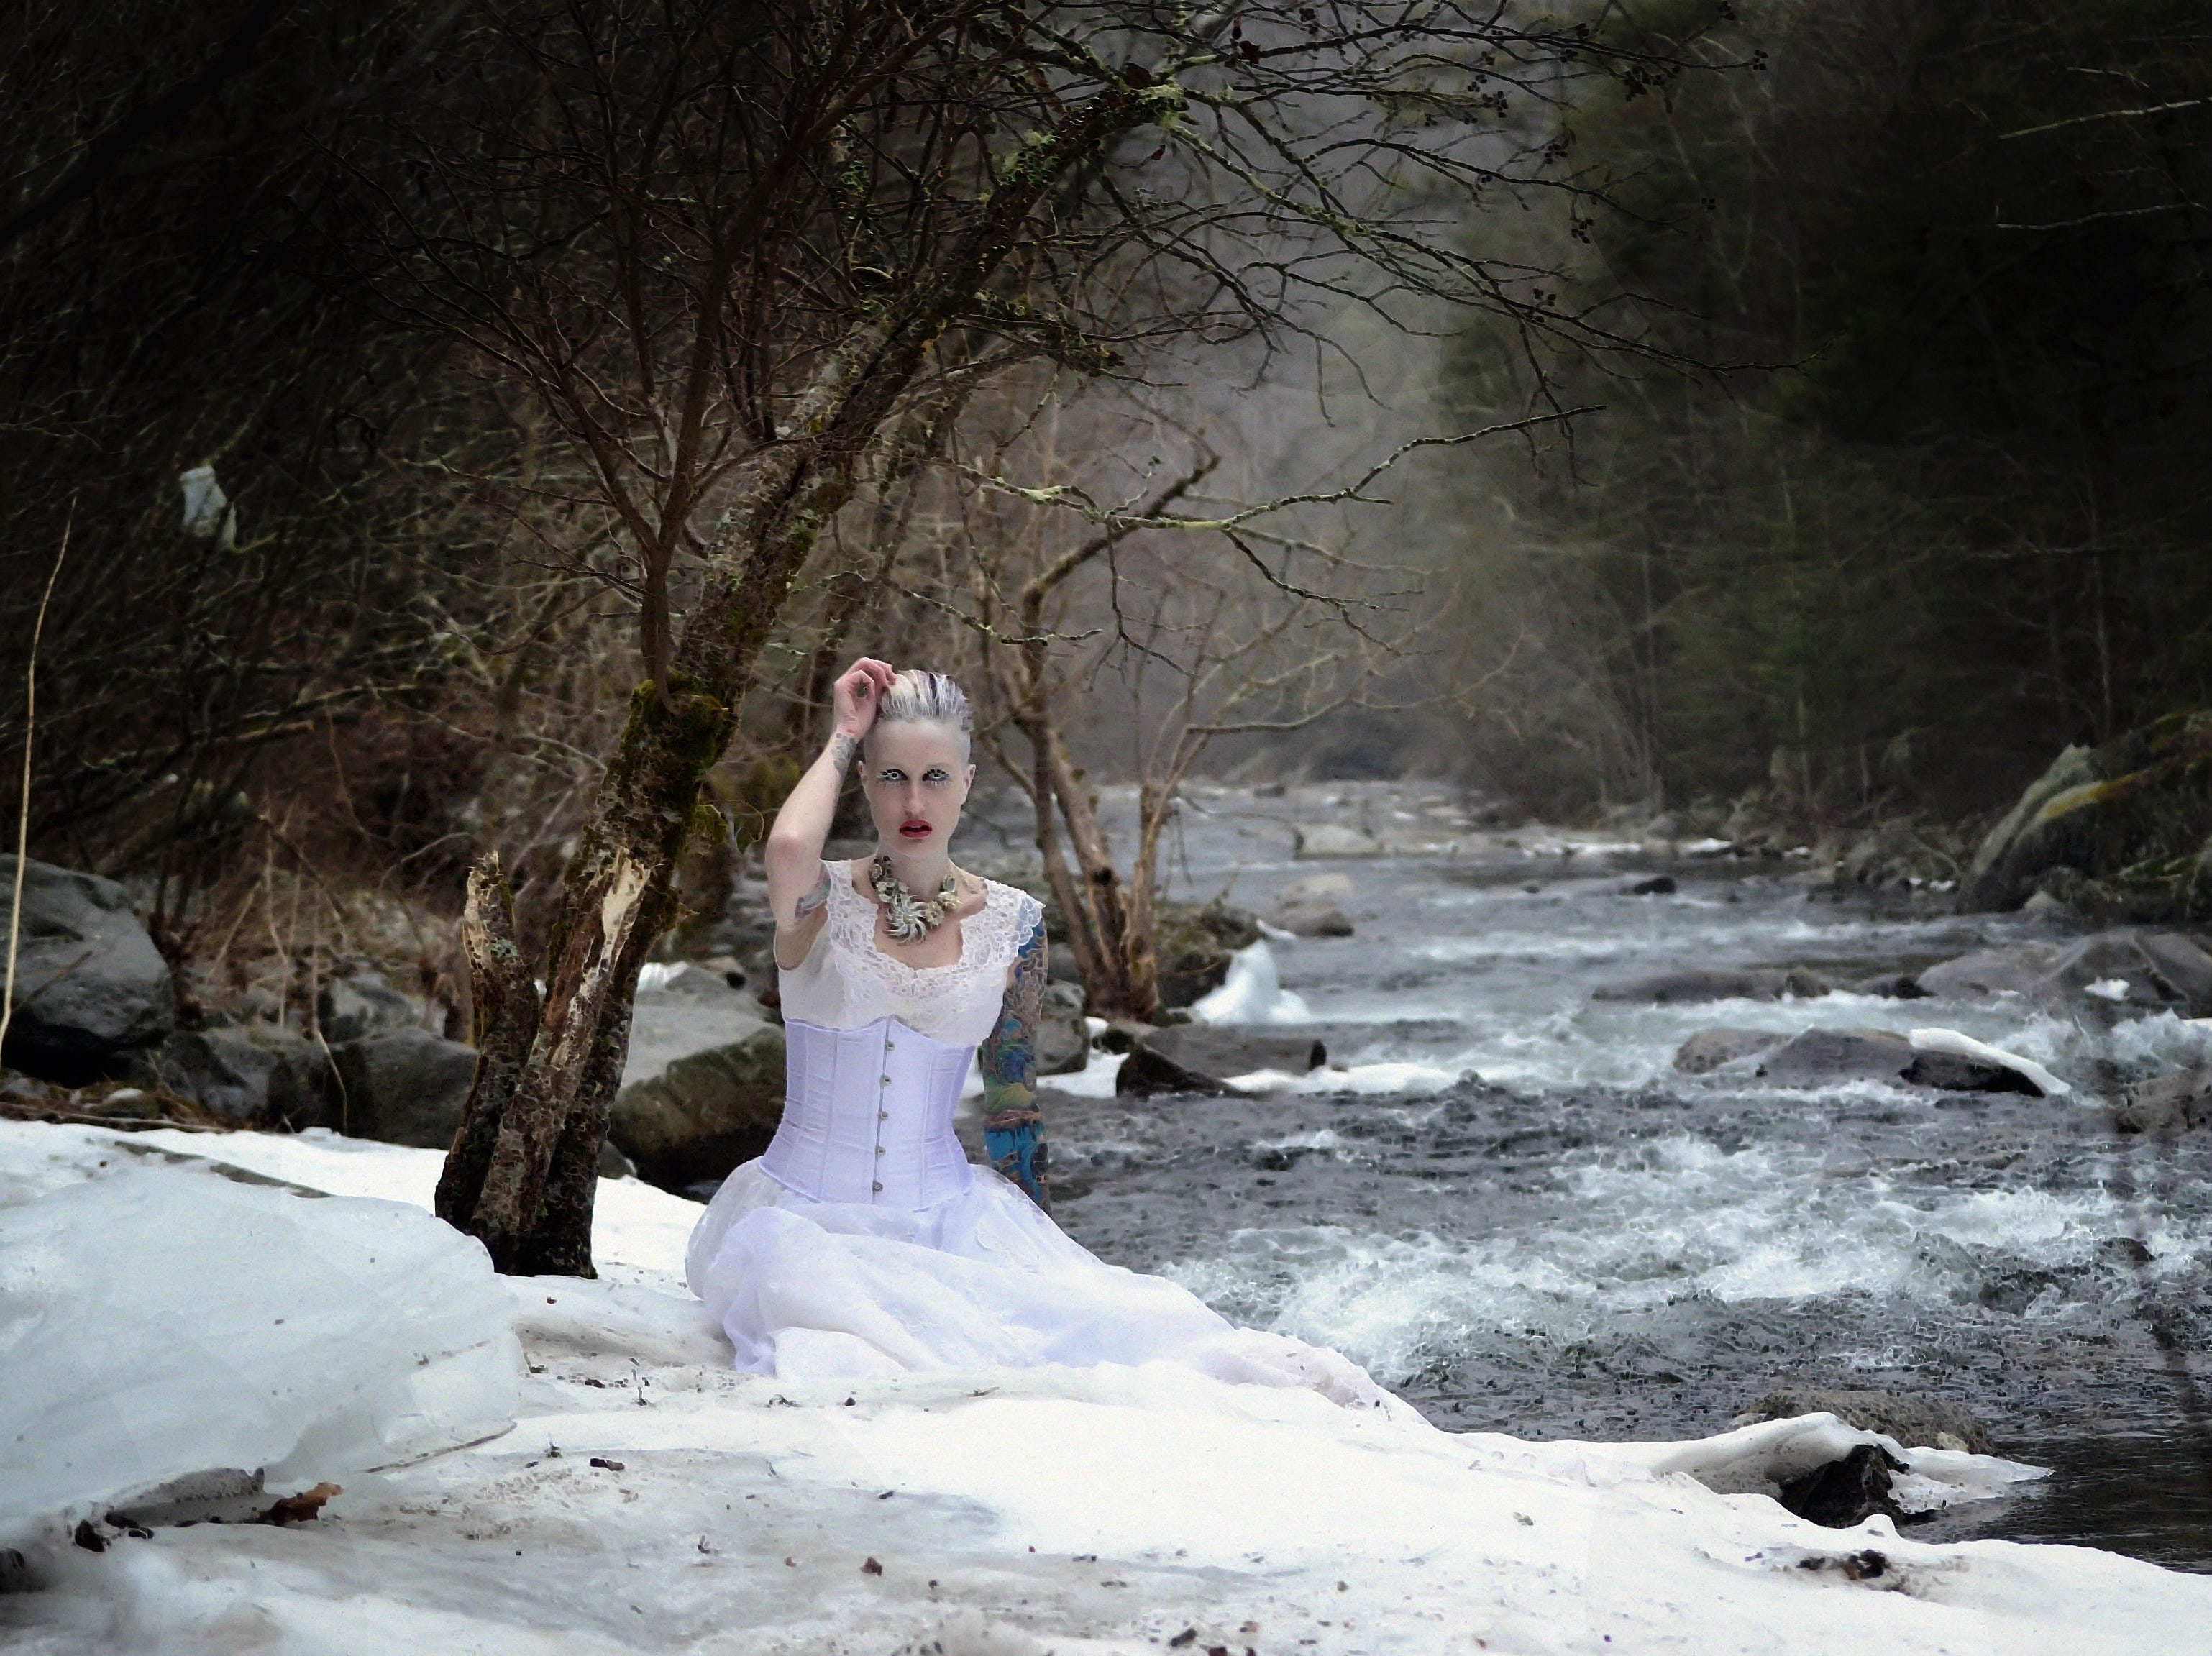 Lori Cannon participates in this seasonal-themed photography shoot by Mallory Bertrand